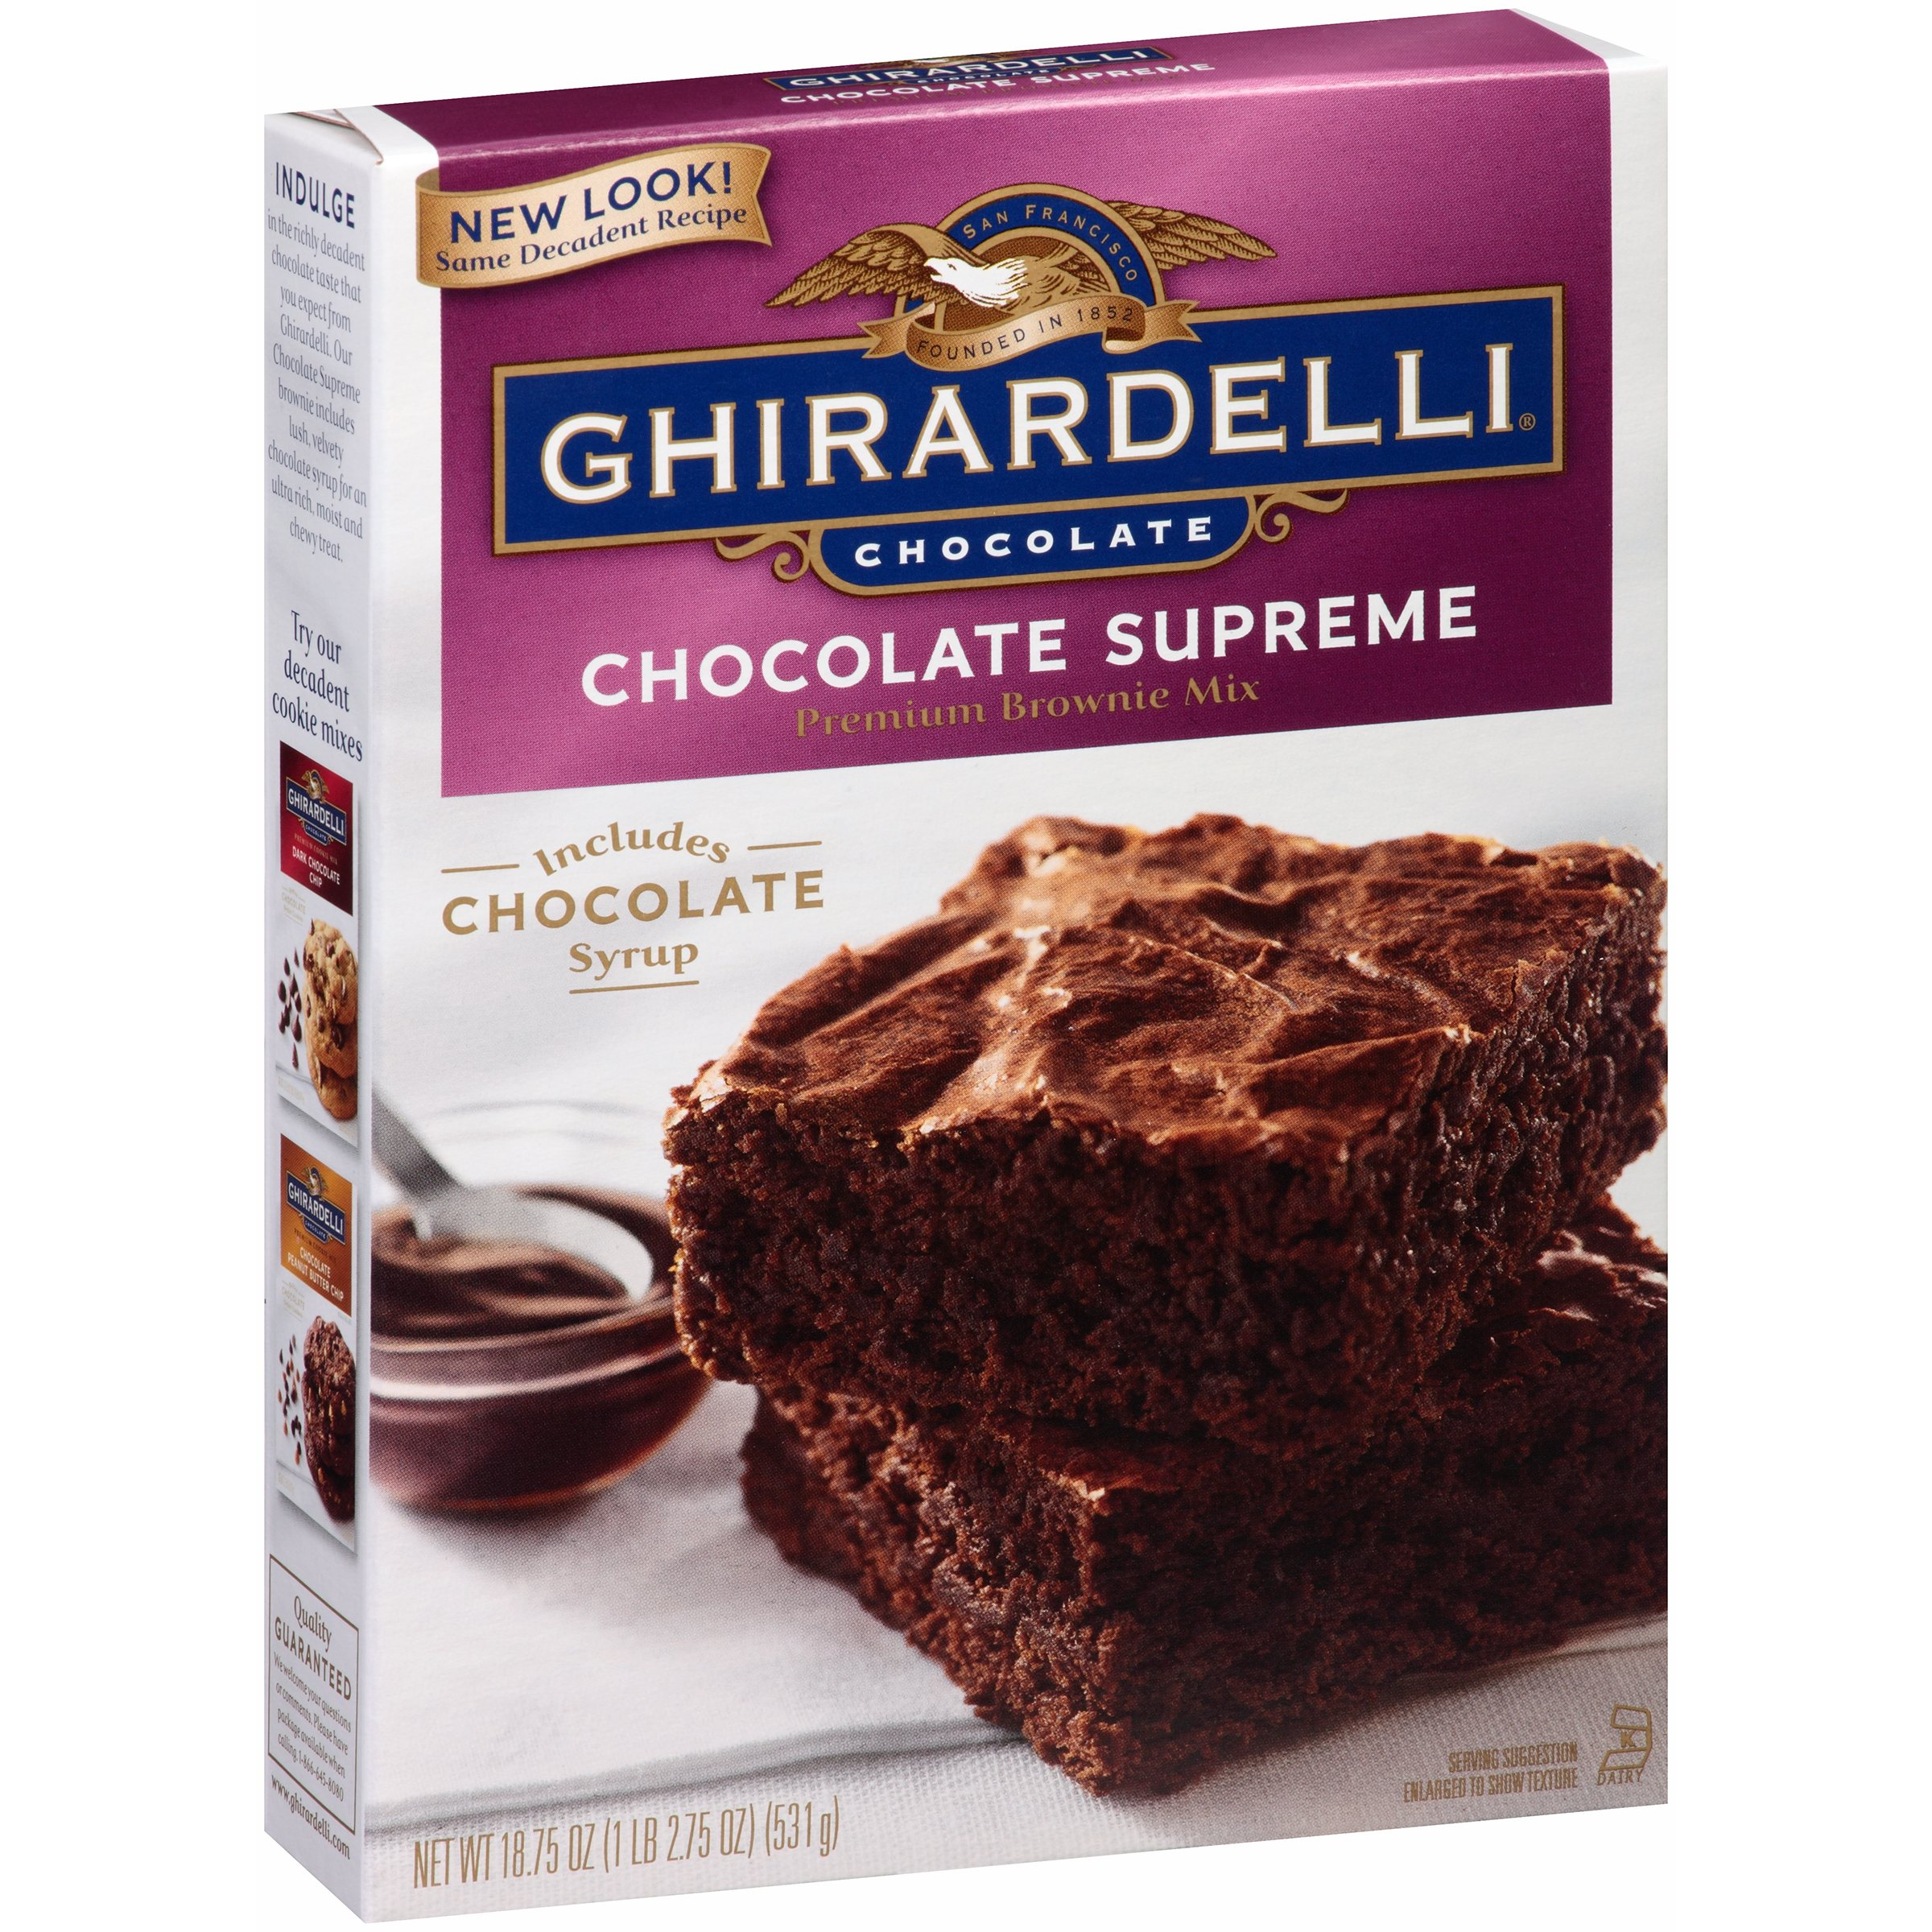 (3 Pack) Ghirardelli Chocolate Supreme Premium Brownie Mix, 18.75 oz